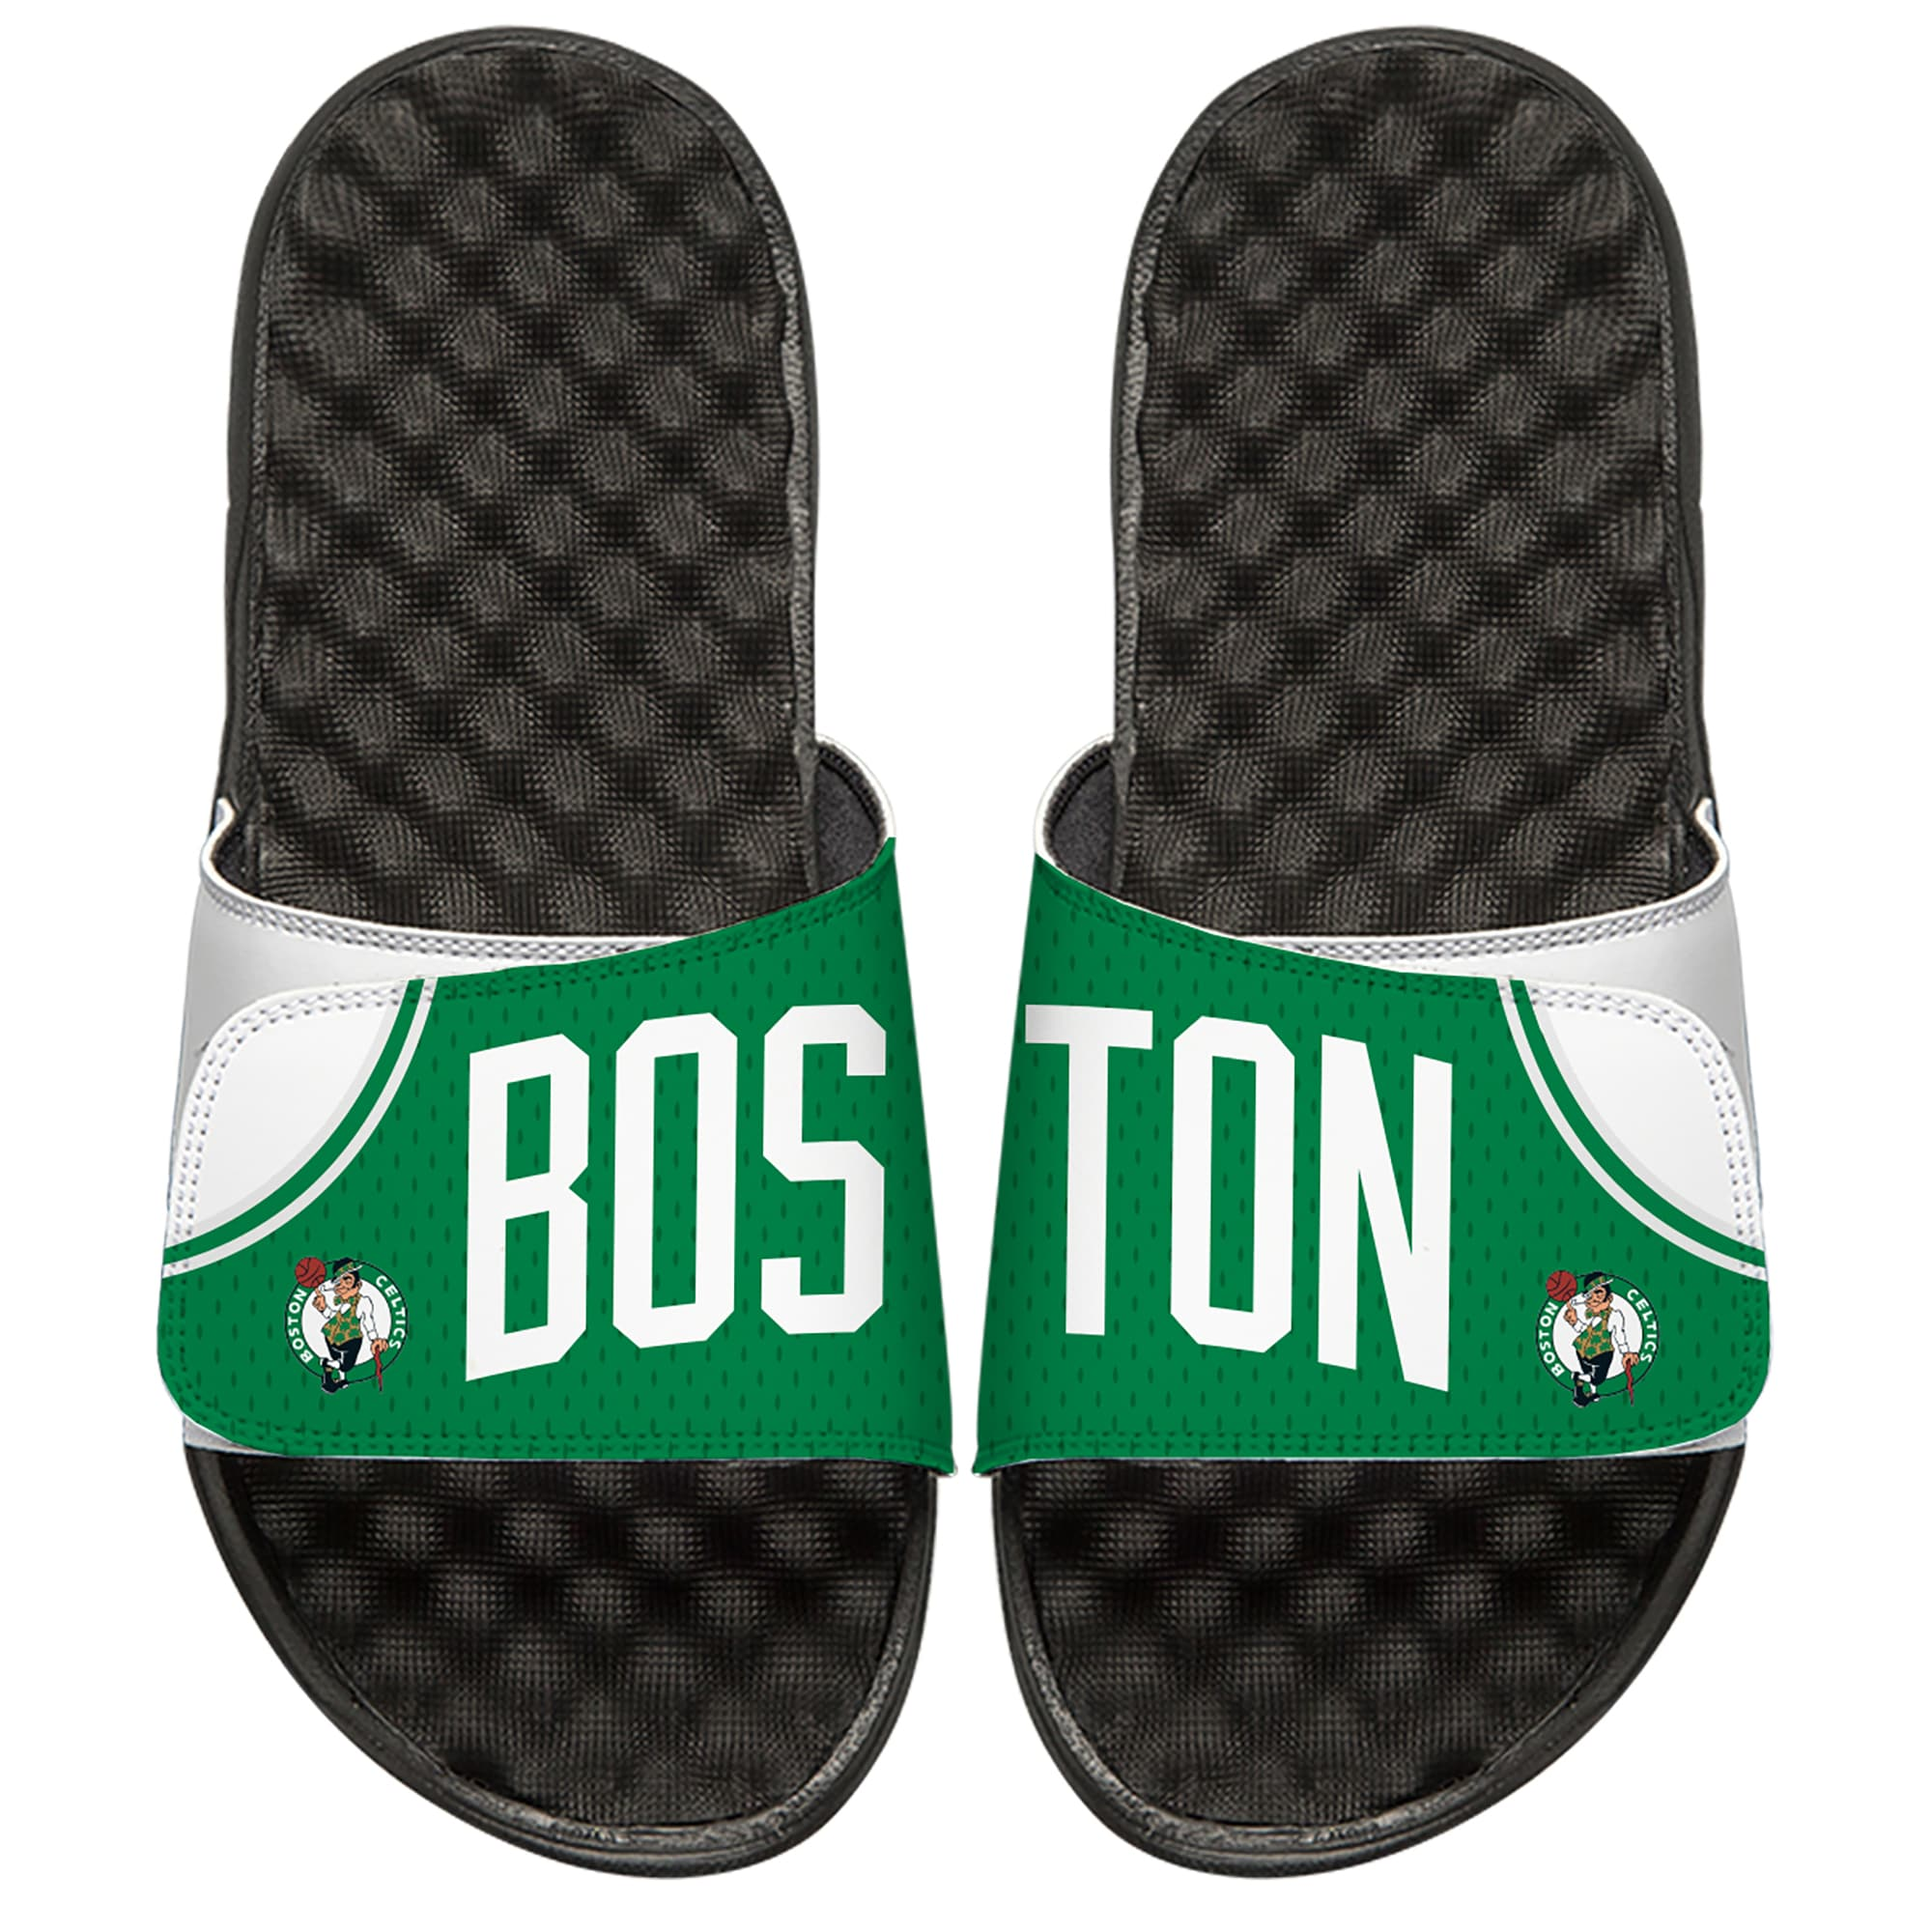 Boston Celtics ISlide Away Jersey Split Slide Sandals - White